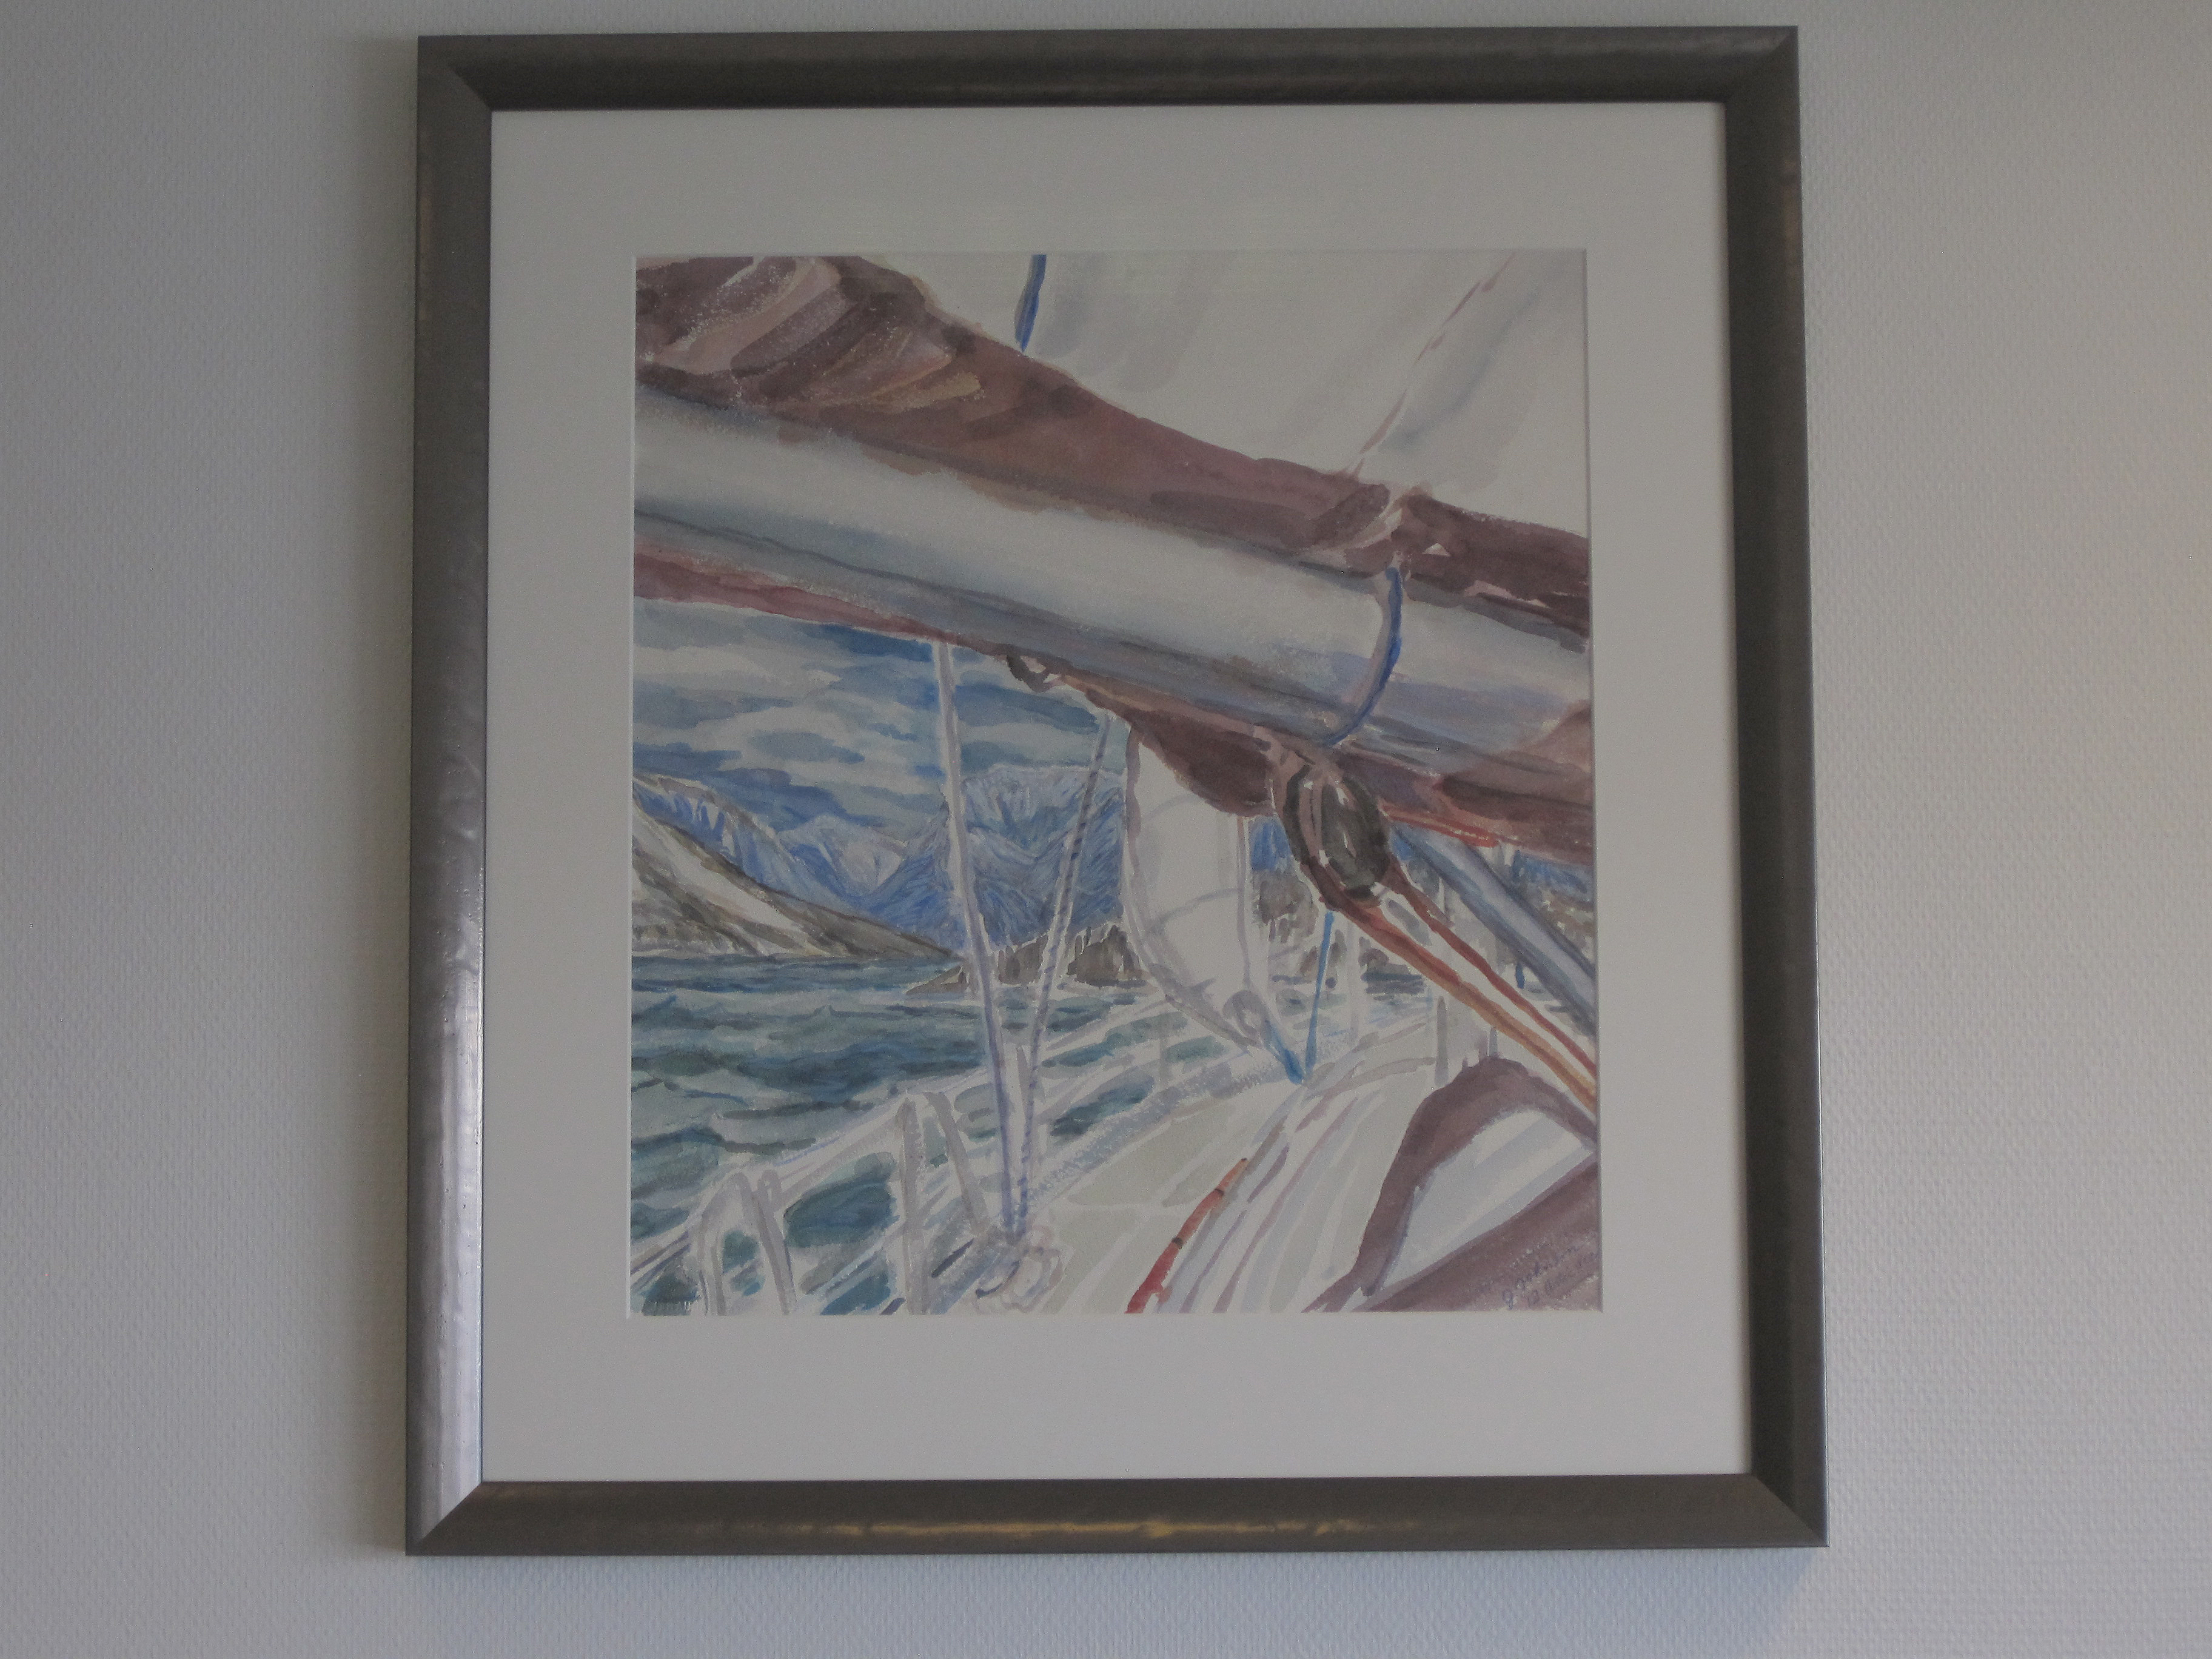 boreal yachting artic ice